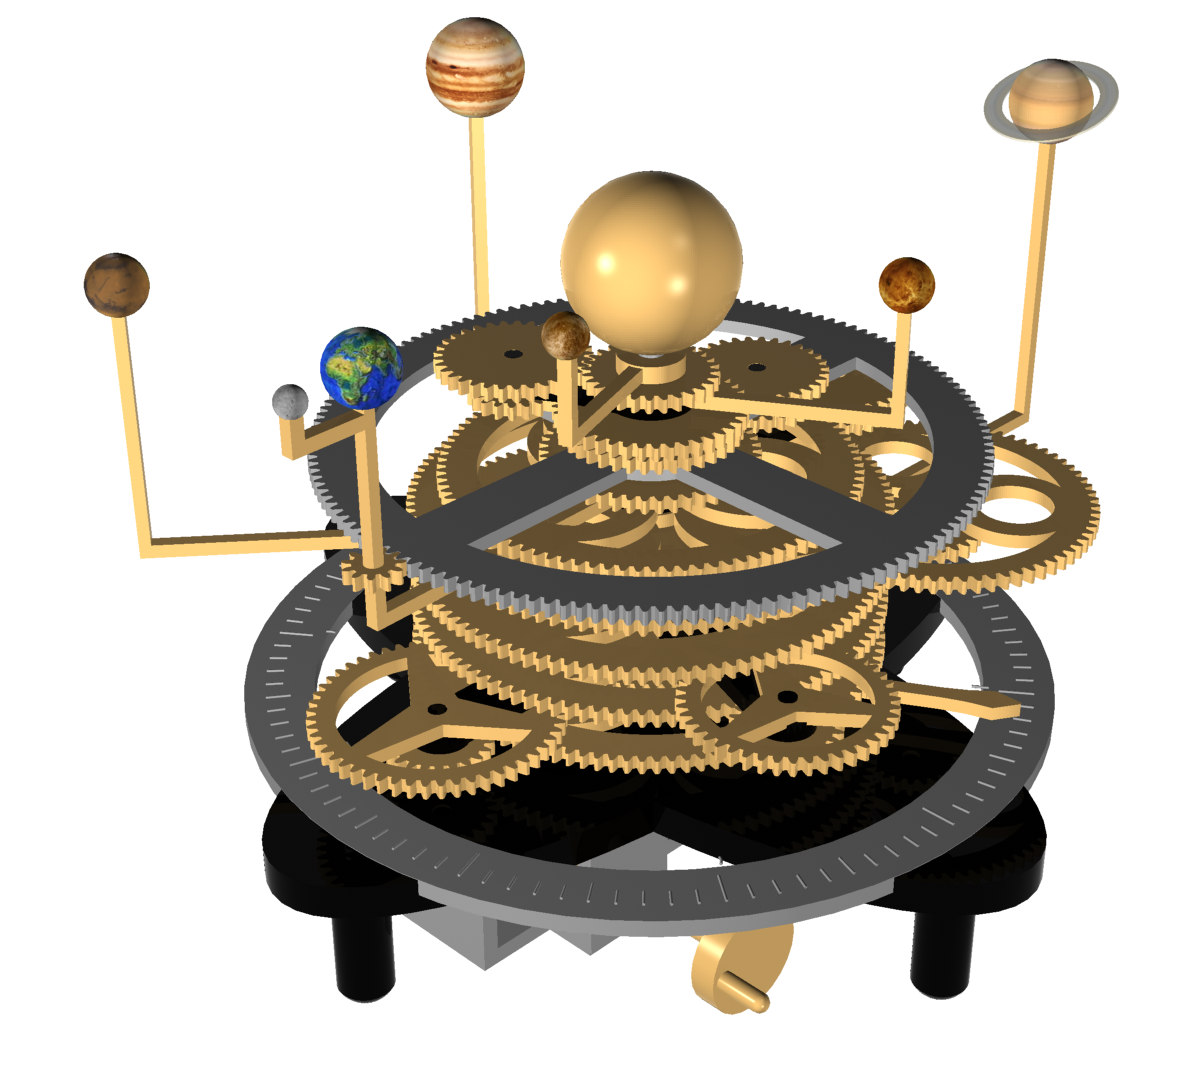 Orrery Concept Model | Globes, Orreries, Etc. in 2019 ...